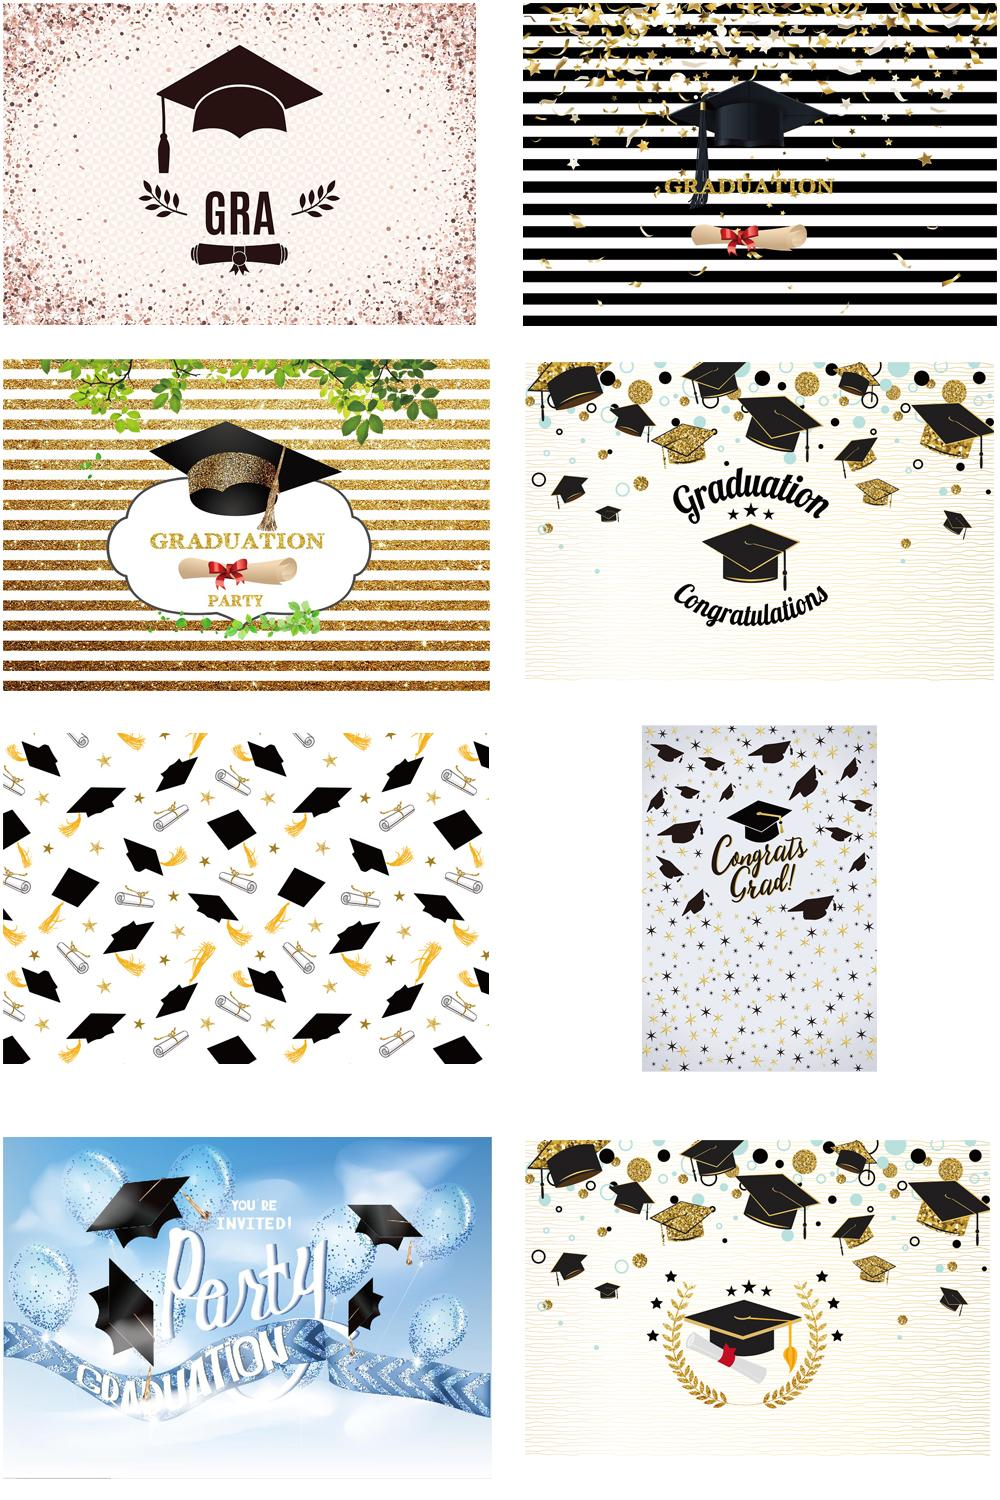 Graduation Backdrops for Photography Graduation Cap Design Photo Booth Background Studio Photocall